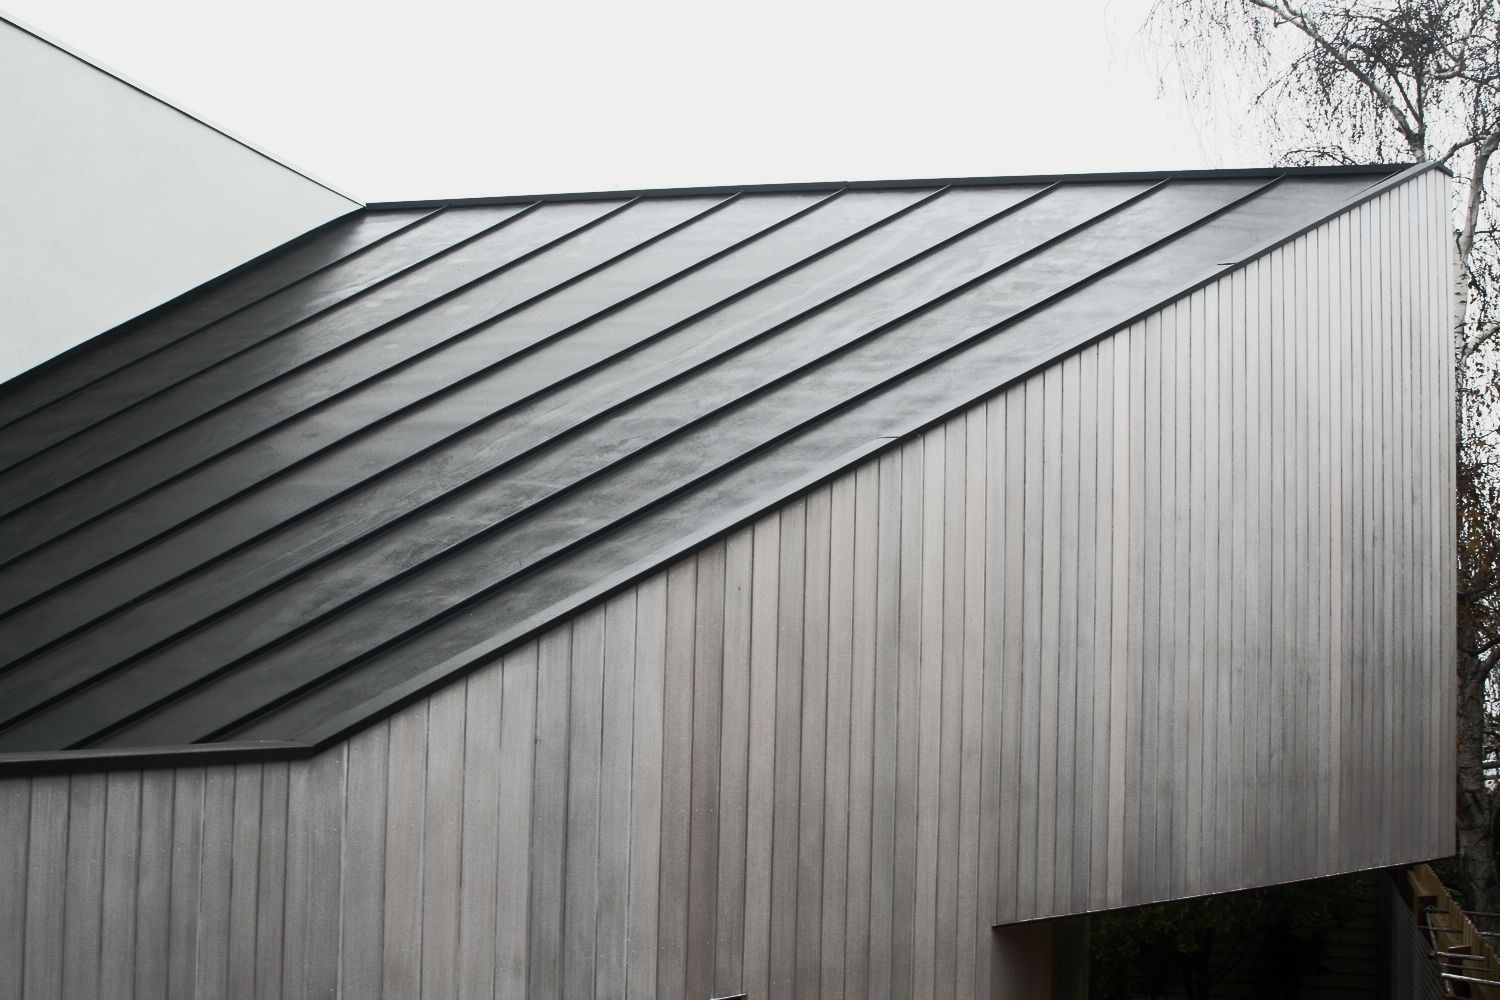 Roof Cladding Exterior Screening And Cladding In 2019 Zinc Roof Roof Cladding Metal Cladding